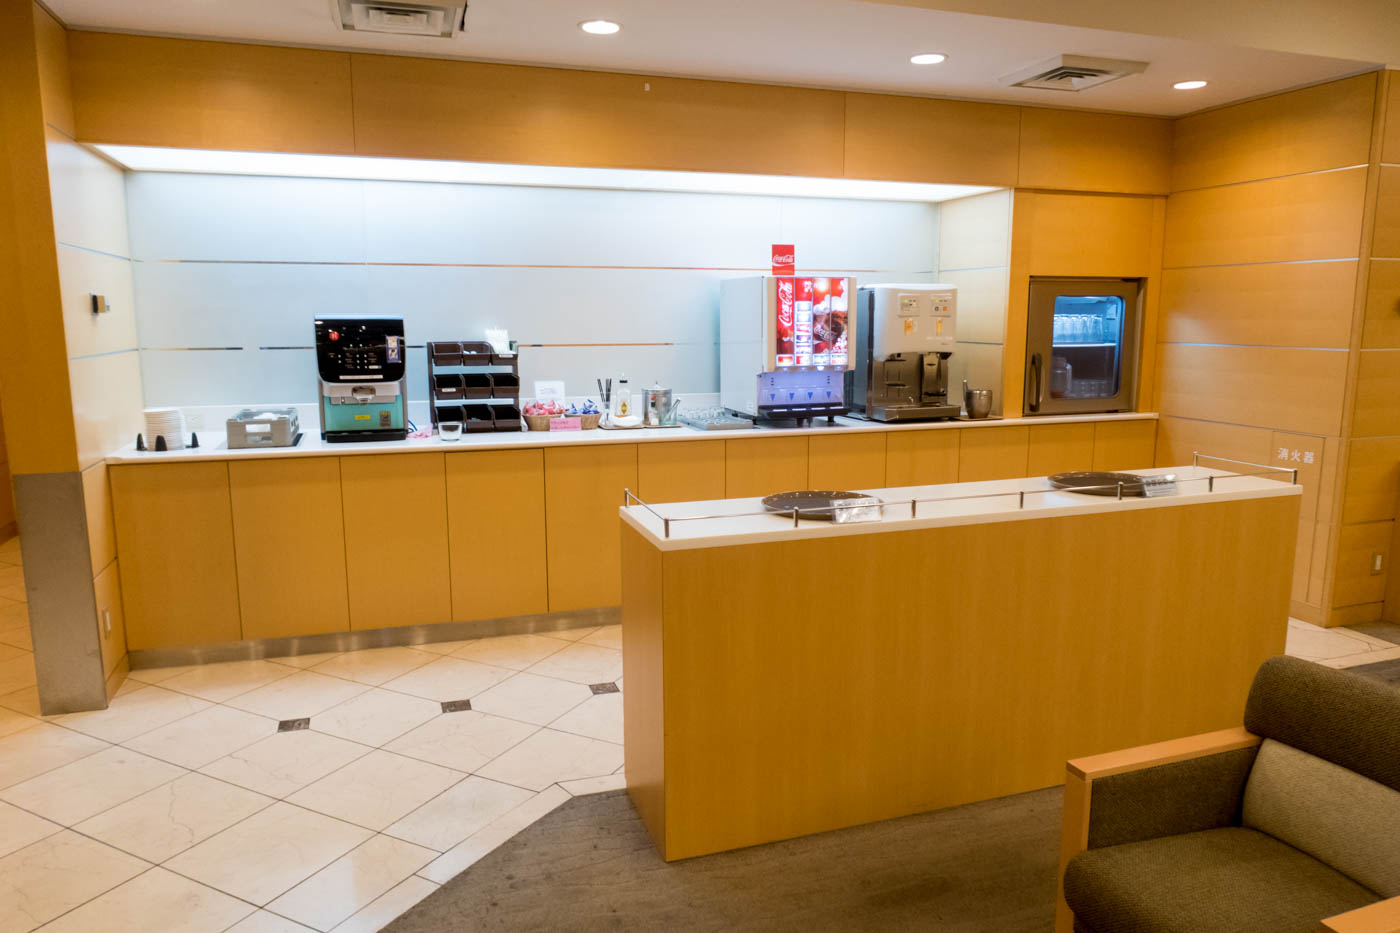 Food and Drinks in Centrair Airline Lounge